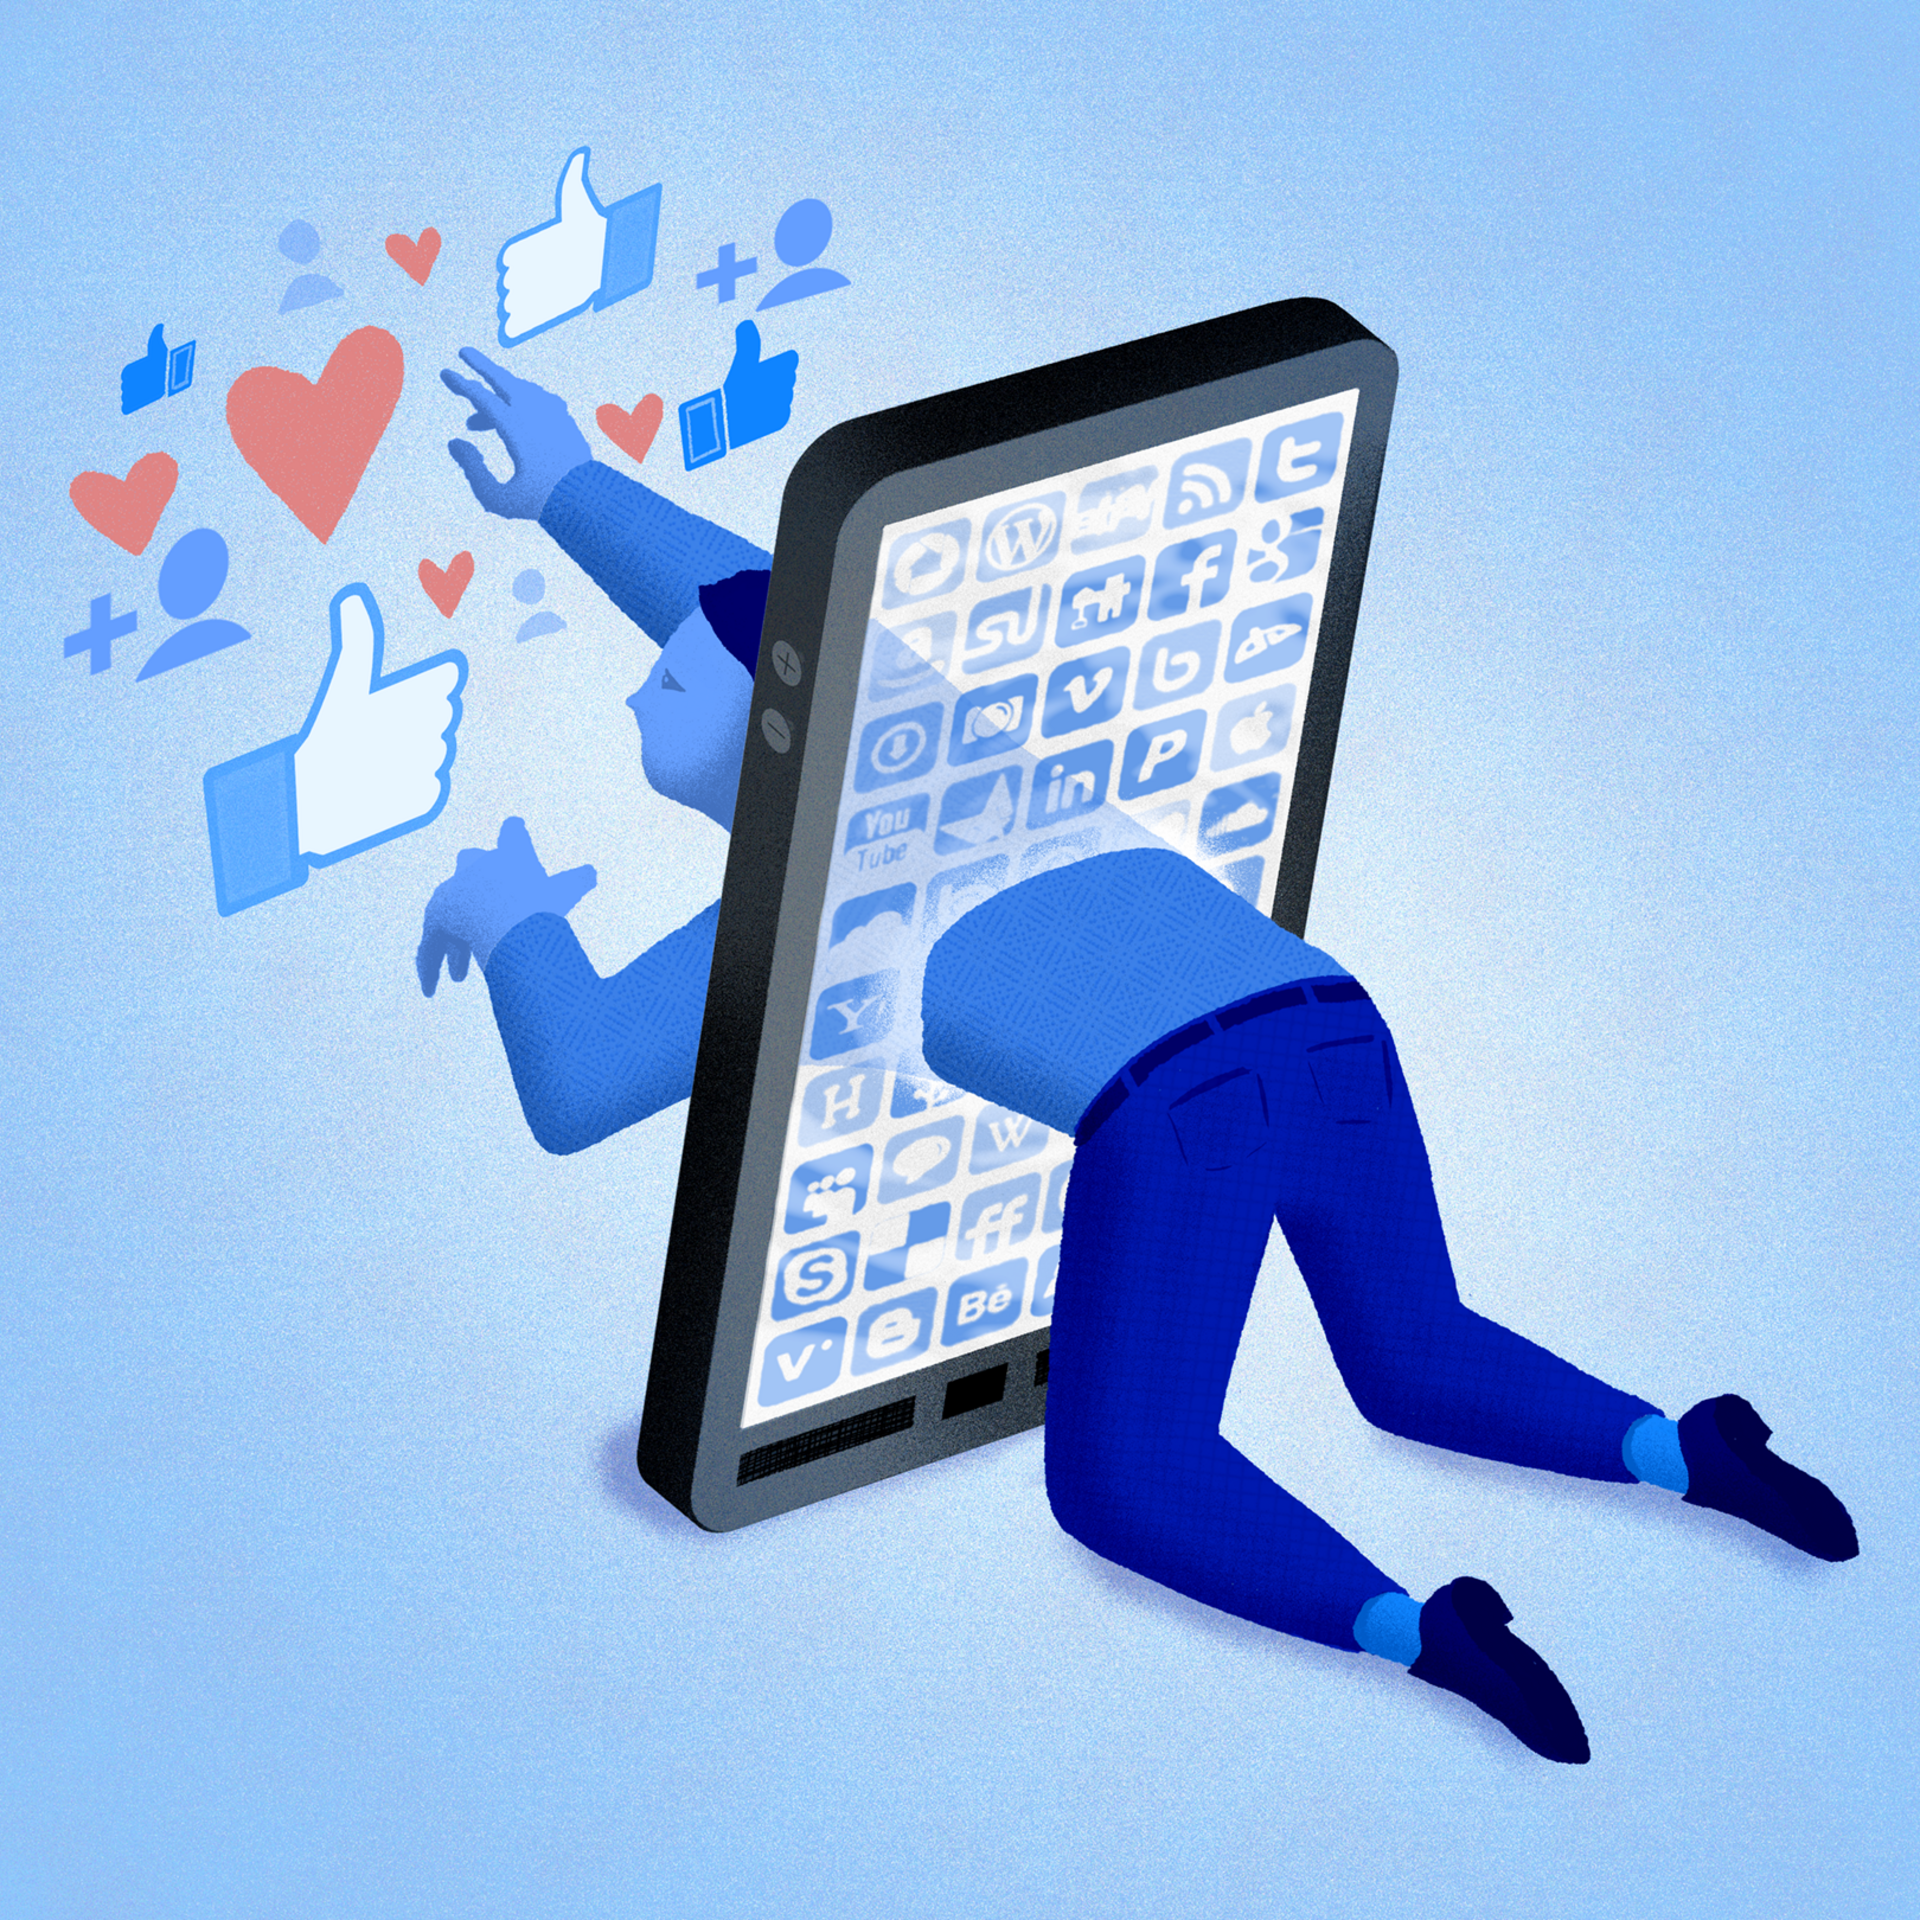 Social Media Is Addictive. Do Regulators Need to Step In? - Yale Insights